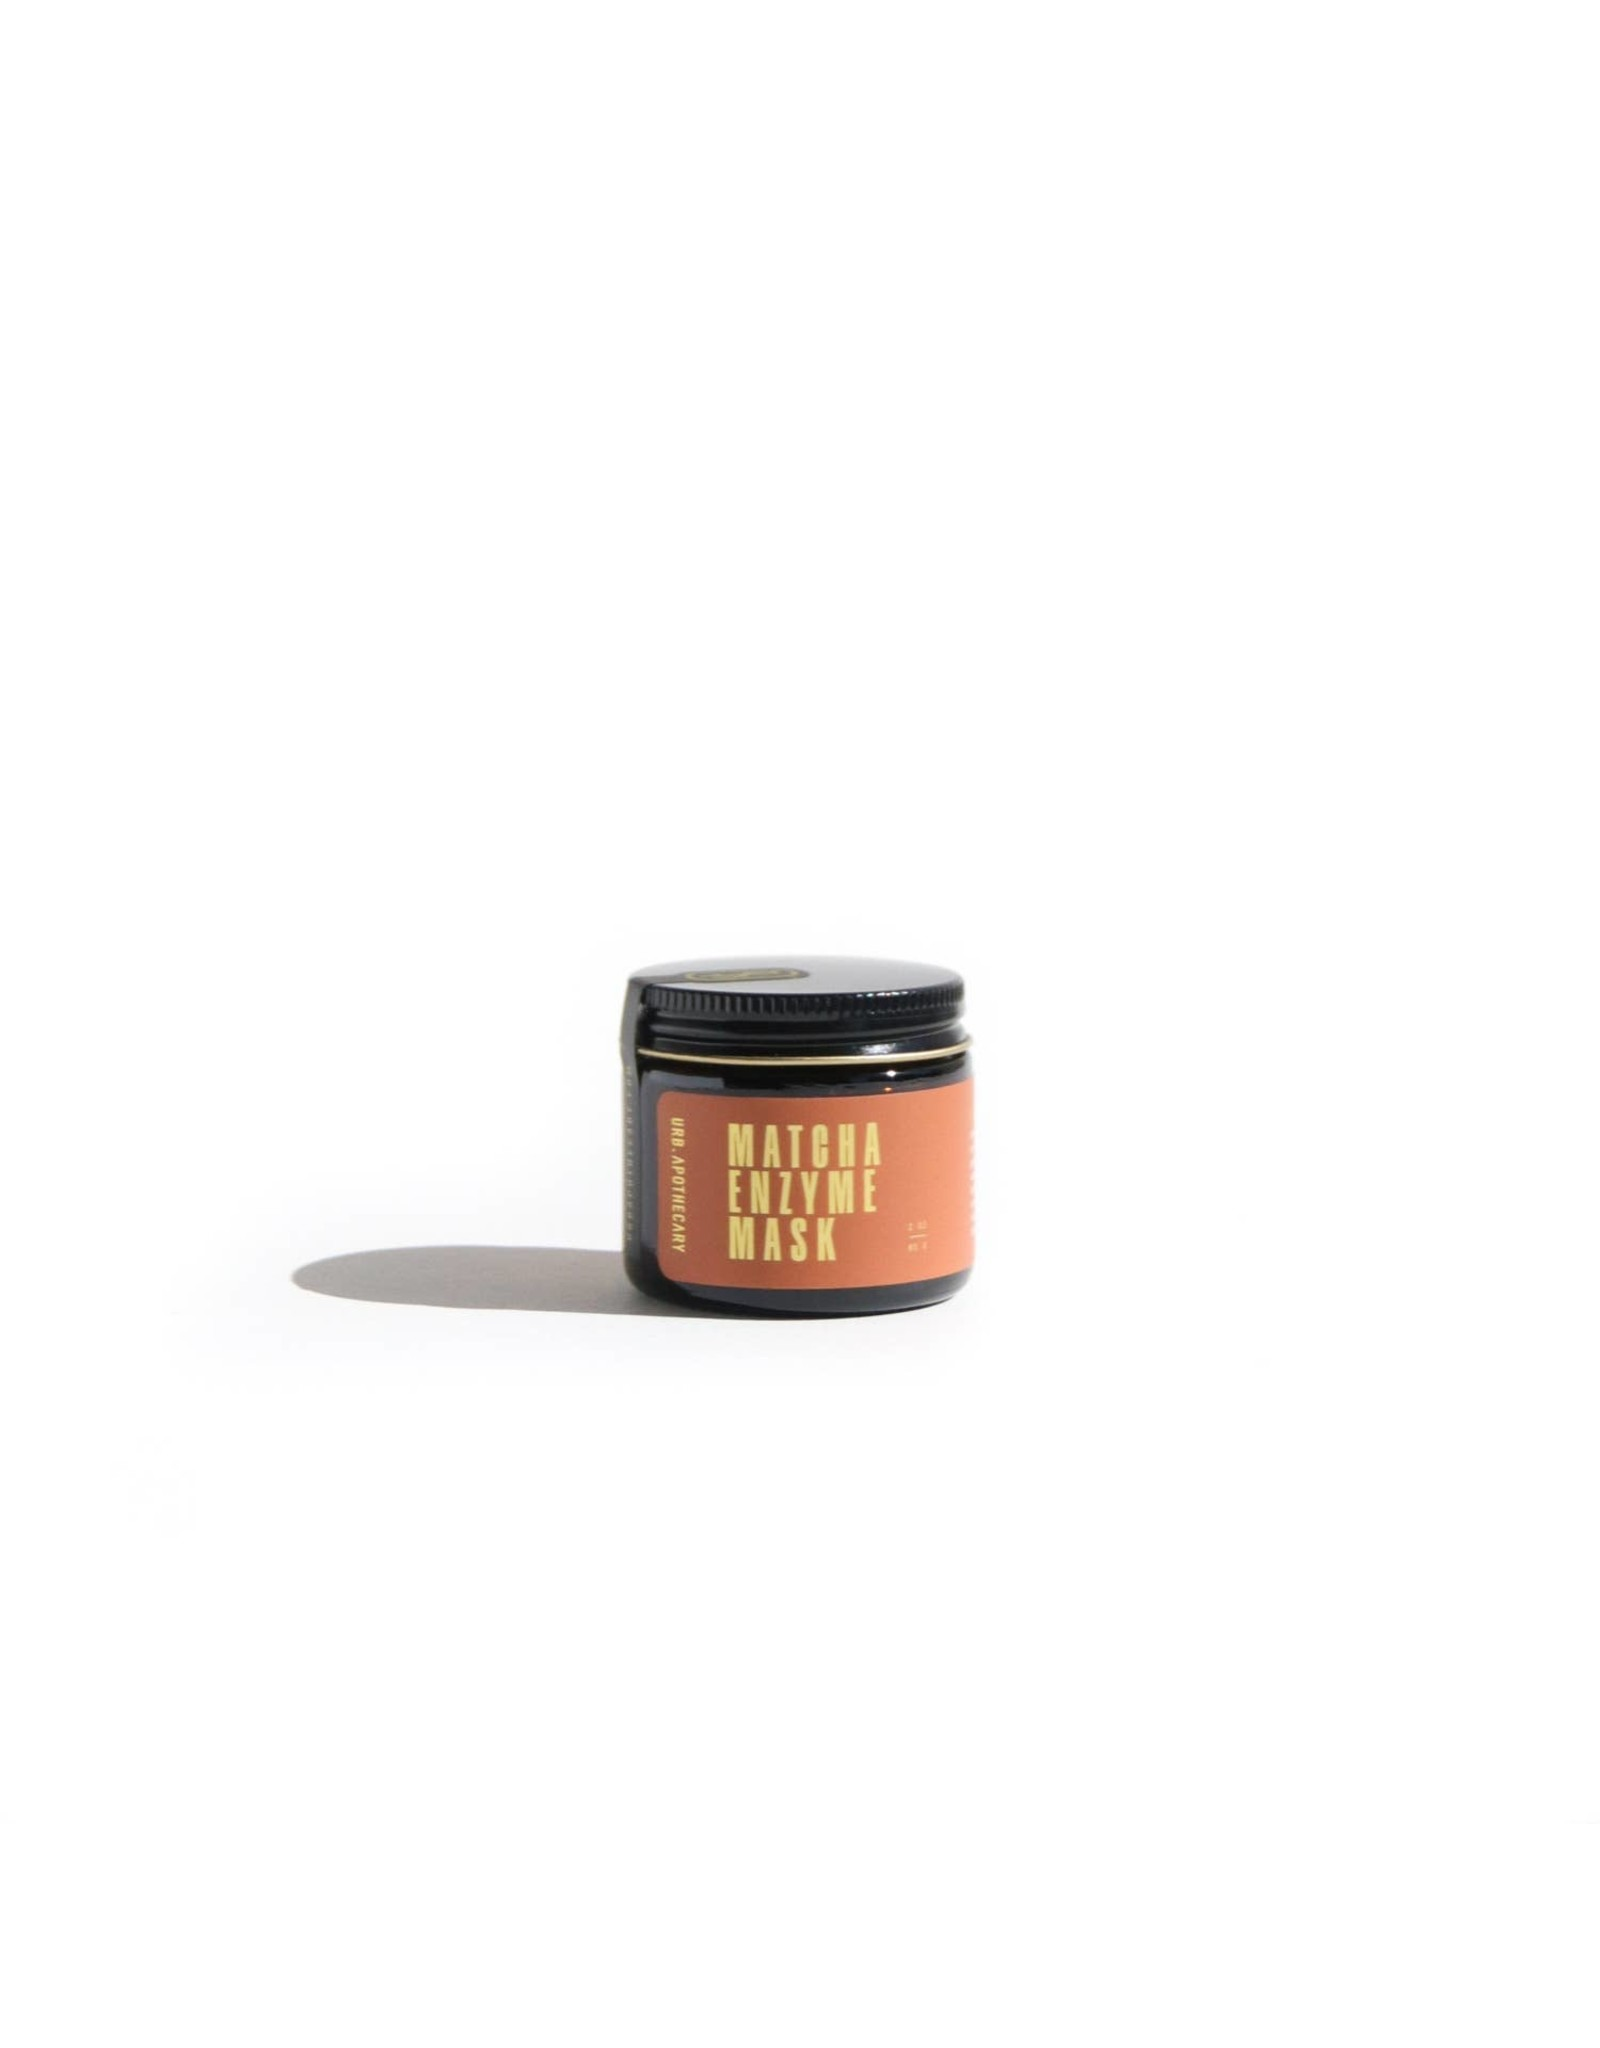 Urb Apothecary Matcha Enzyme Mask